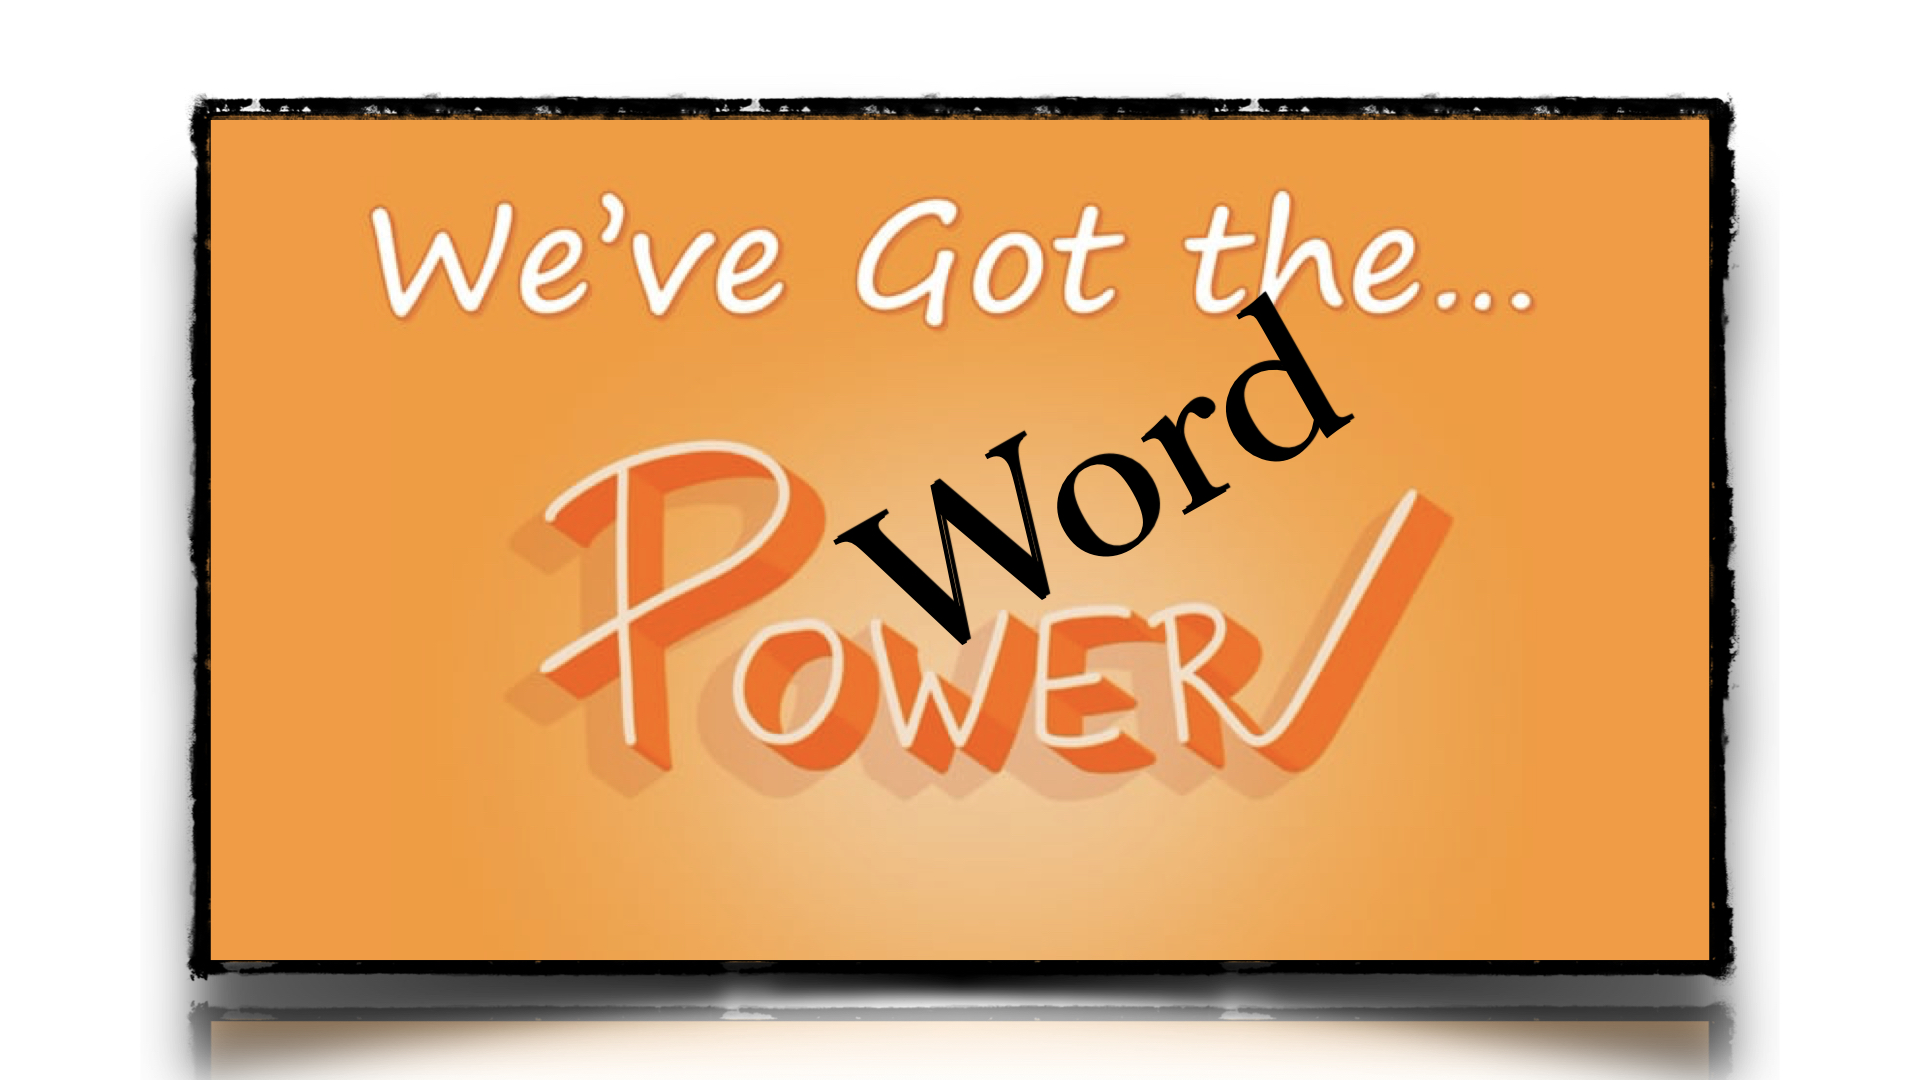 We Got the WORD POWER 3132019 50948 PM